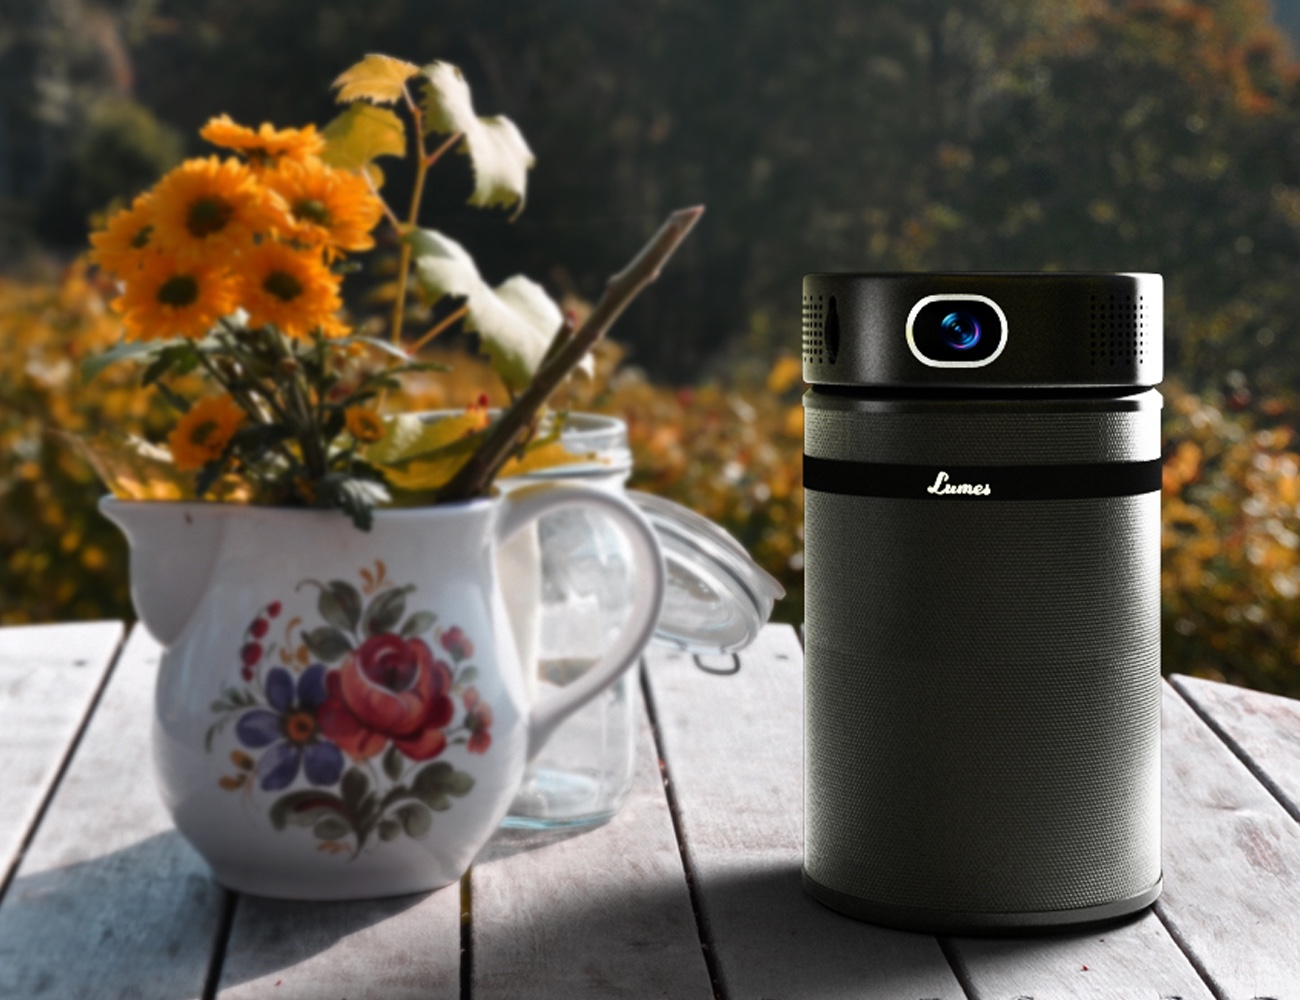 Lumes Portable All-In-One Projector